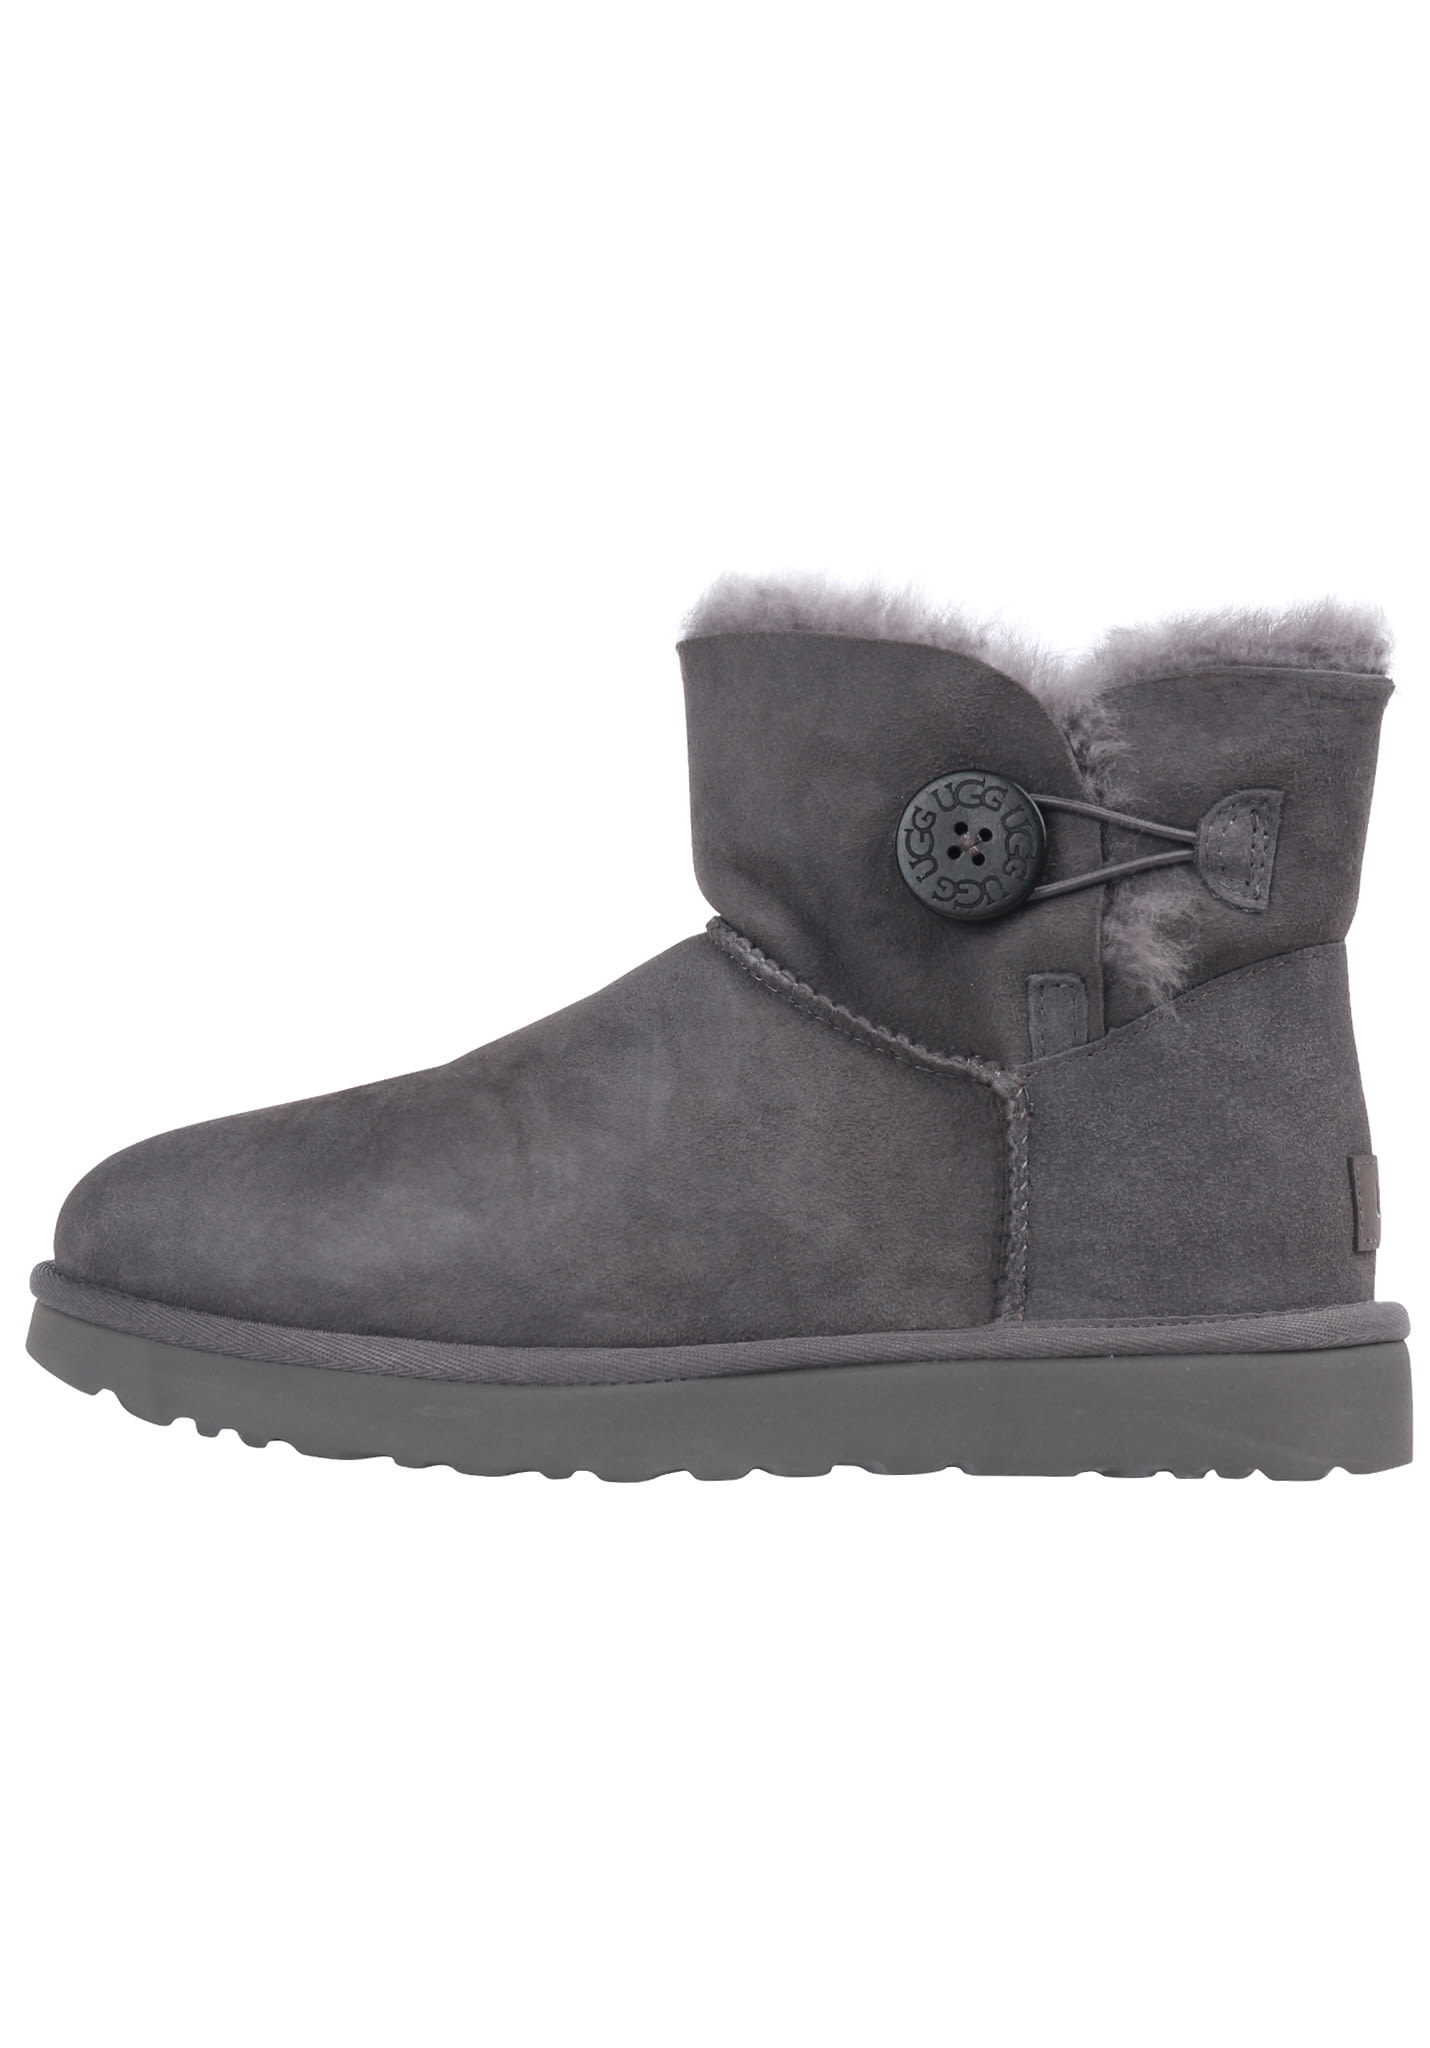 0e9a9be7976 UGG Mini Bailey Button II - Boots for Women - Grey